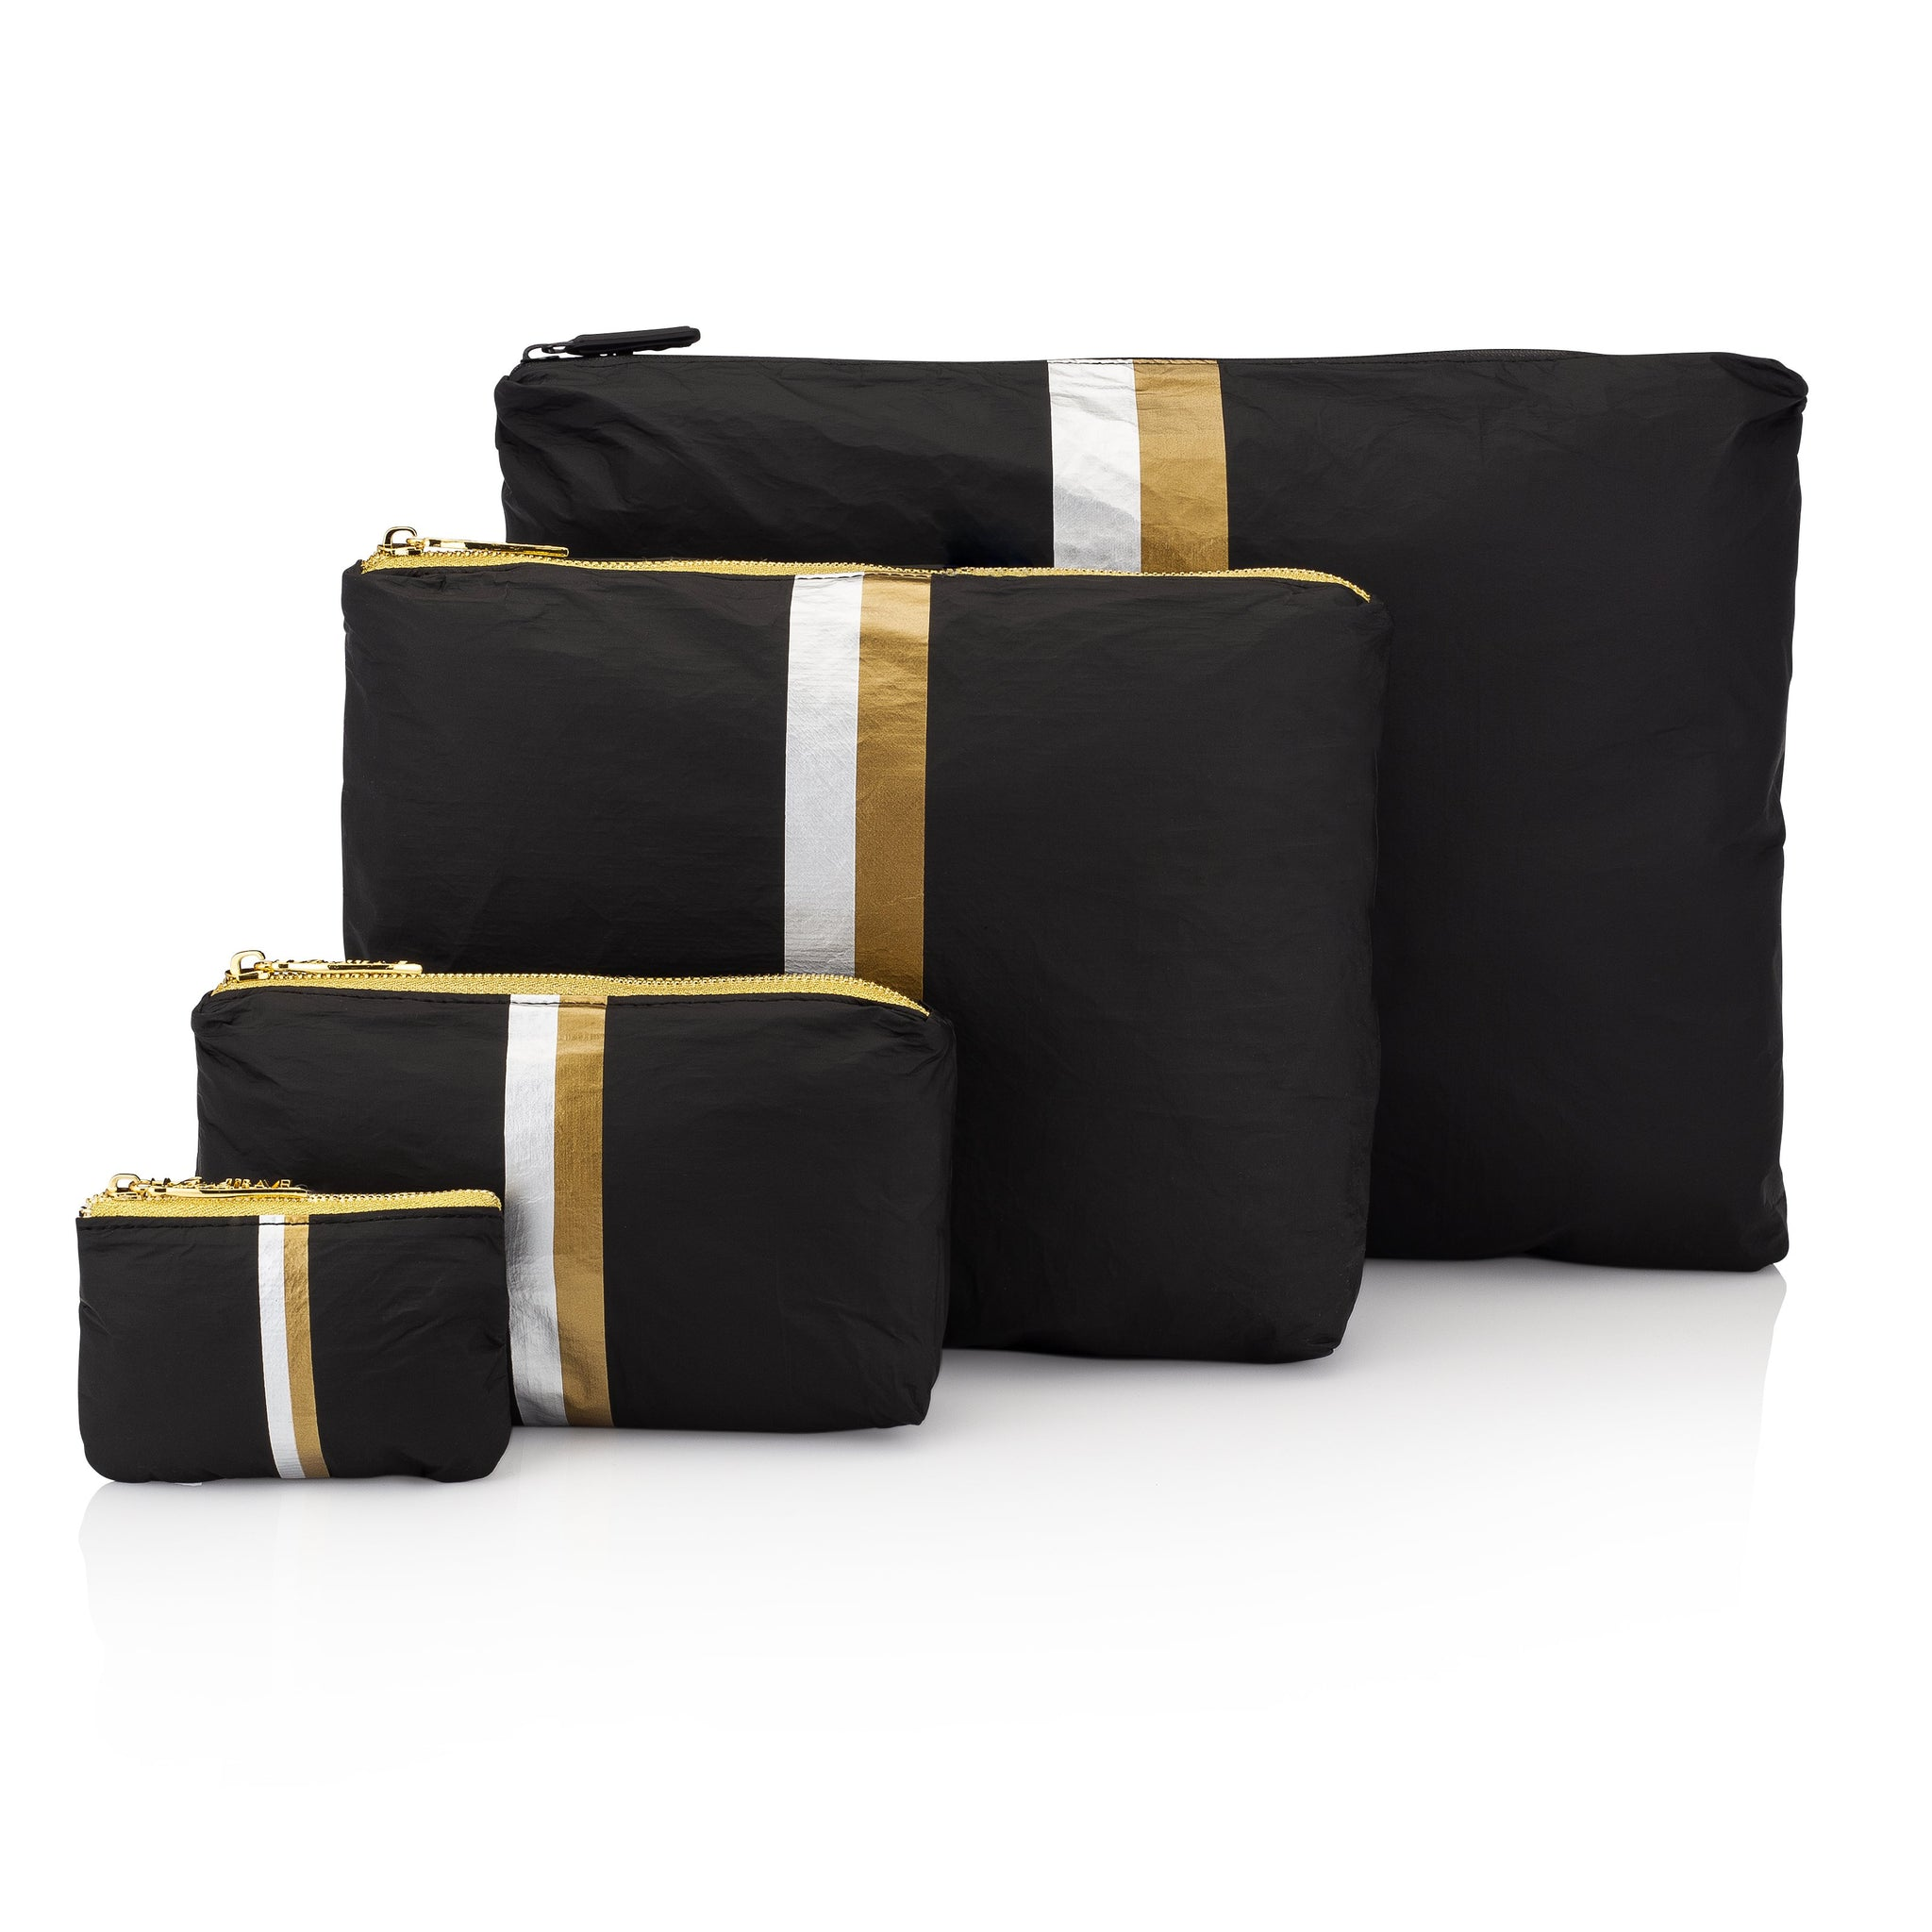 Four Piece Travel Bag Set - Black HLT Collection with Metallic Silver and Gold Stripes